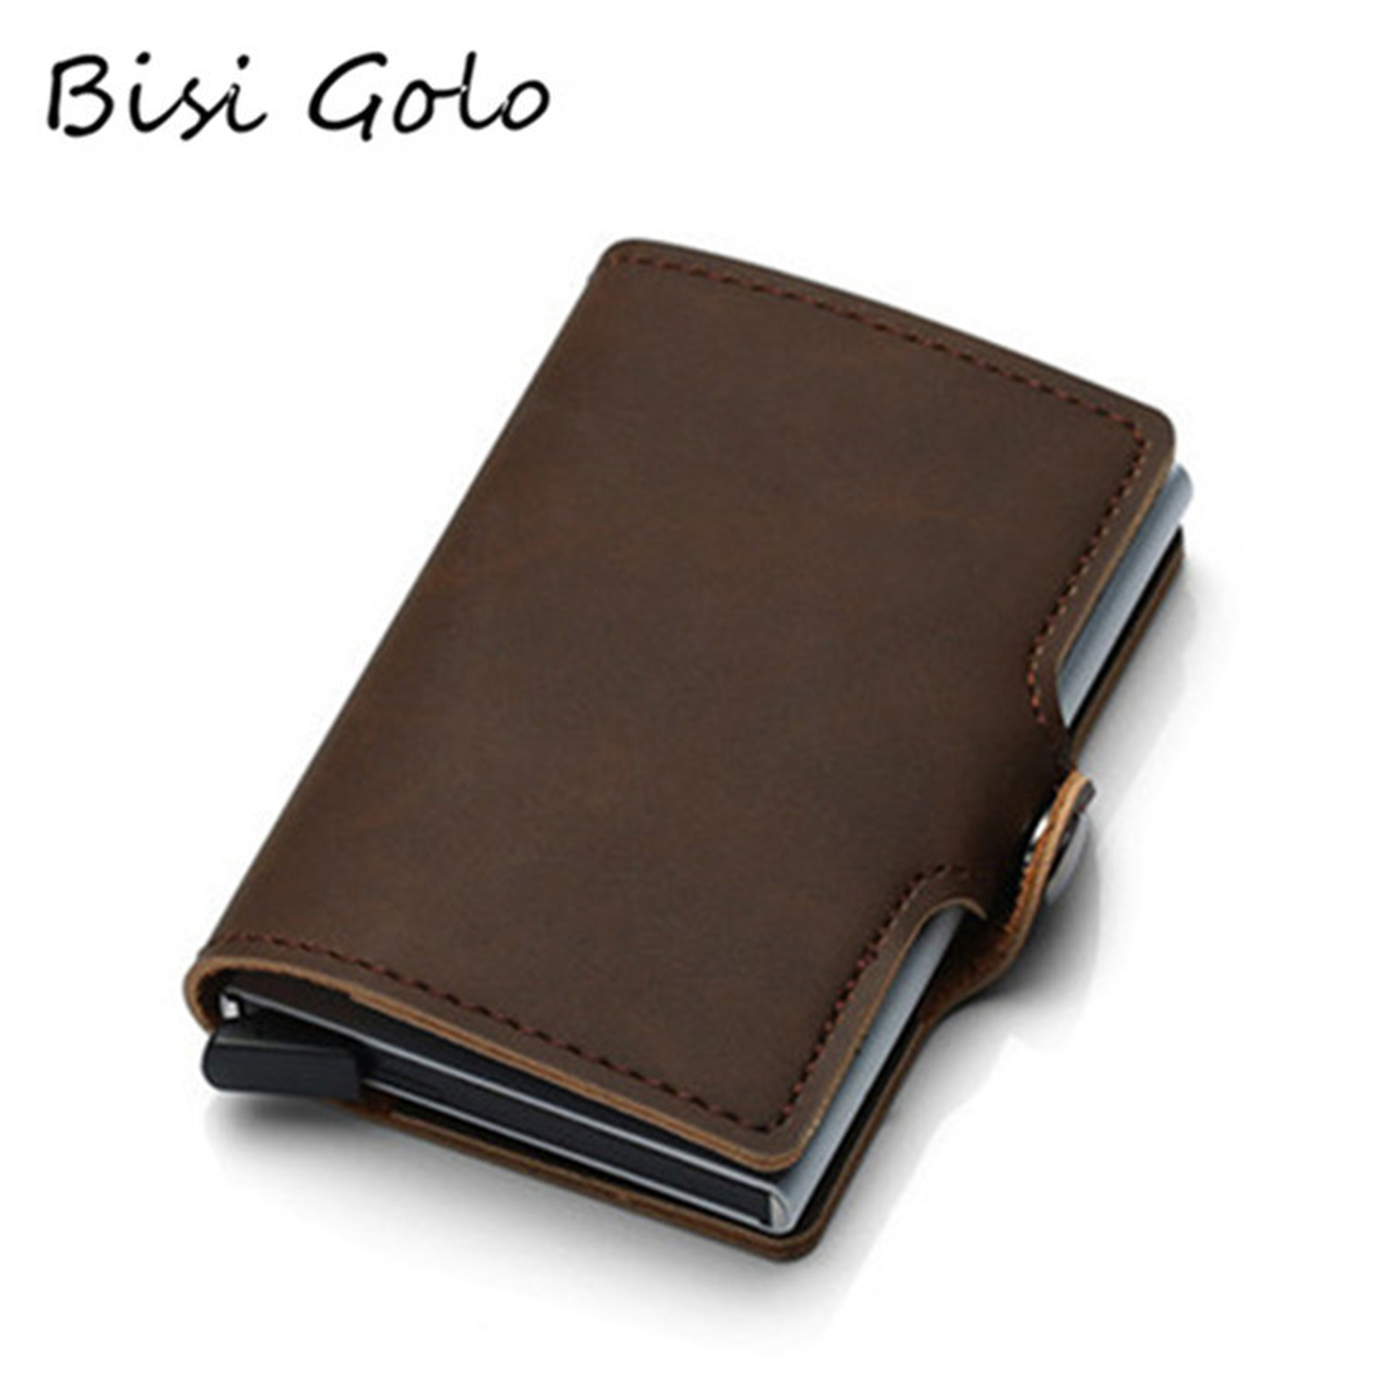 BISI GORO 2019 PU Leather Credit Card Holder Card Case Women And Men RFID Wallets Hasp Vintage Business ID Holder Single Box